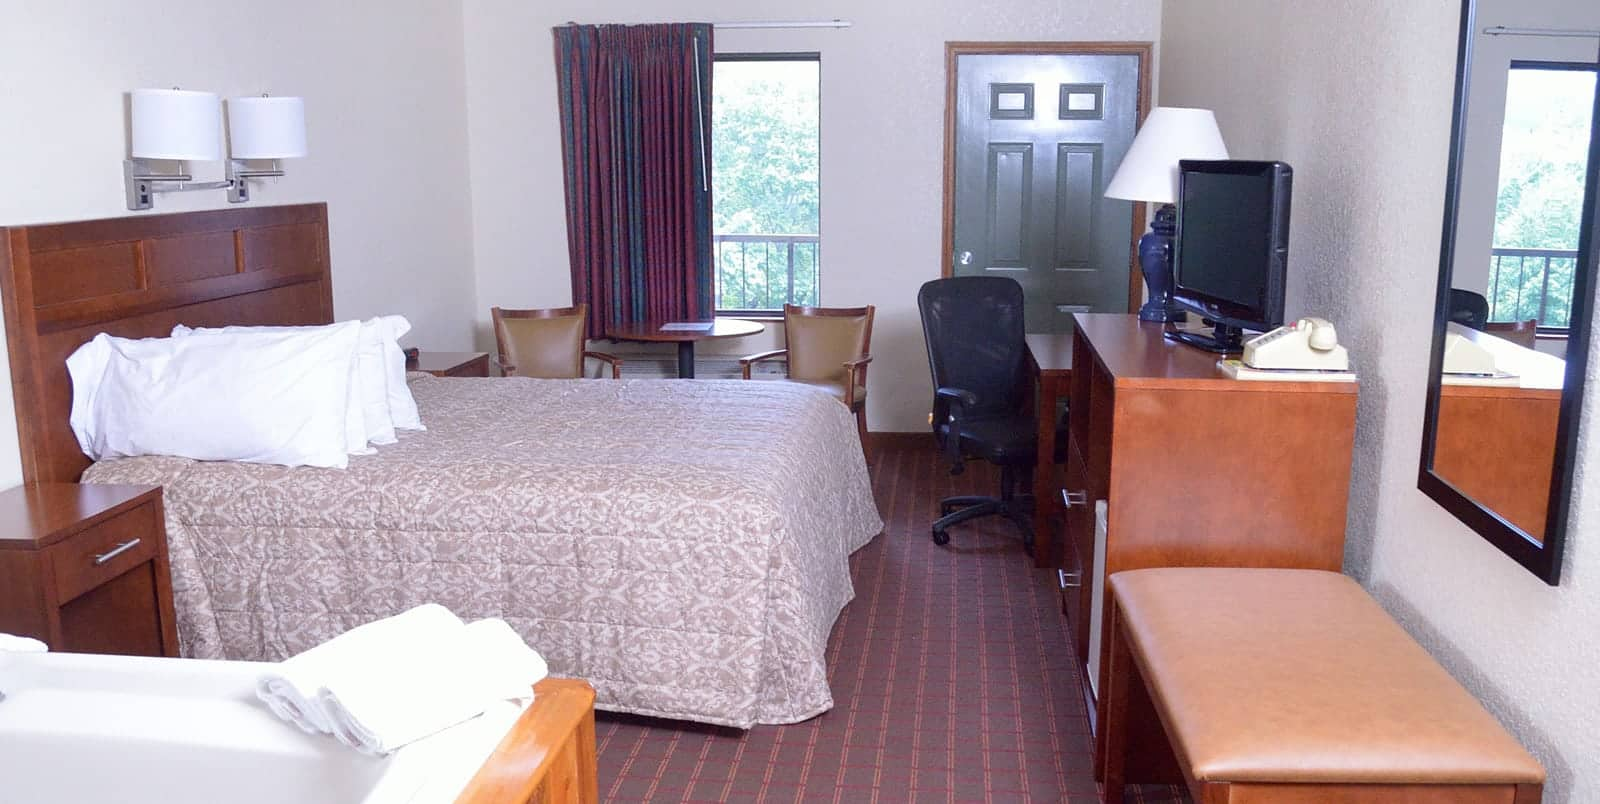 valley forge chat rooms Upgraded premium wifi, keurig coffee brewer, snacks and drinks upgraded amenities in our premium suites make for the best experience yet the assortment of non-alcoholic drinks, snacks and k-cups are replenished daily.